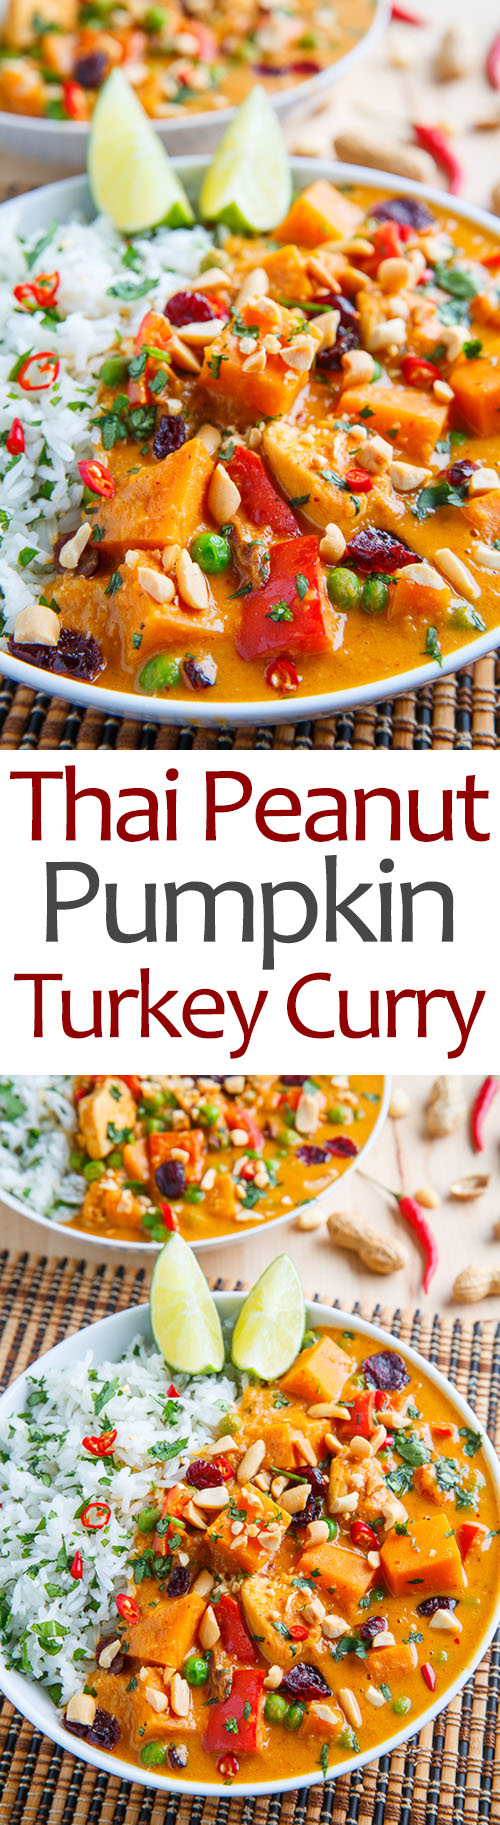 Thai Peanut Pumpkin Turkey Curry